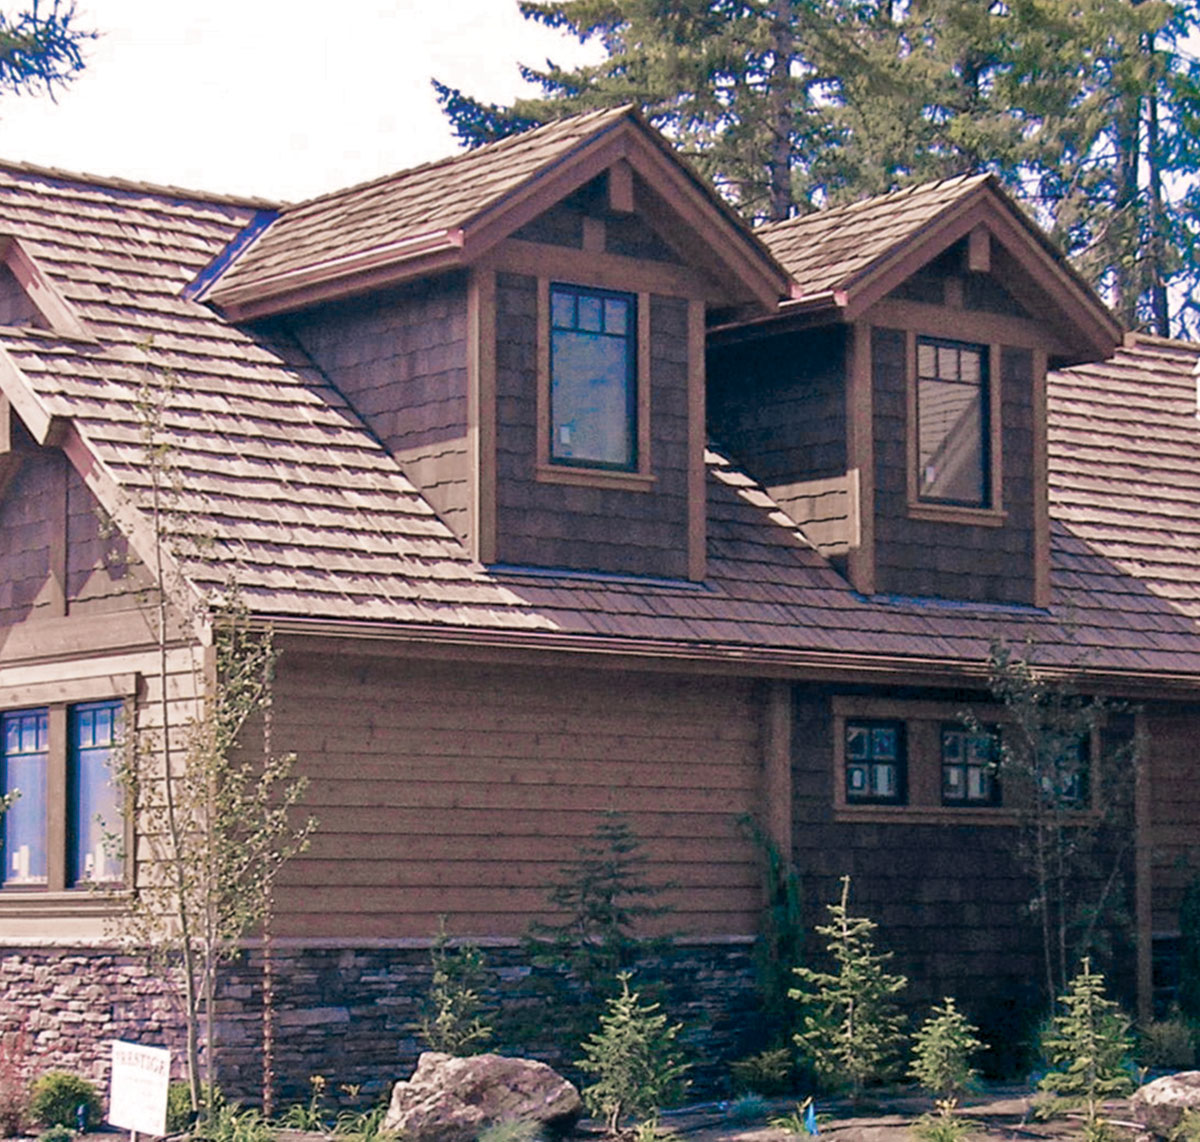 traditionally for many generations one of the preferred exterior siding materials has been wood whether it is wood shingles or wood siding